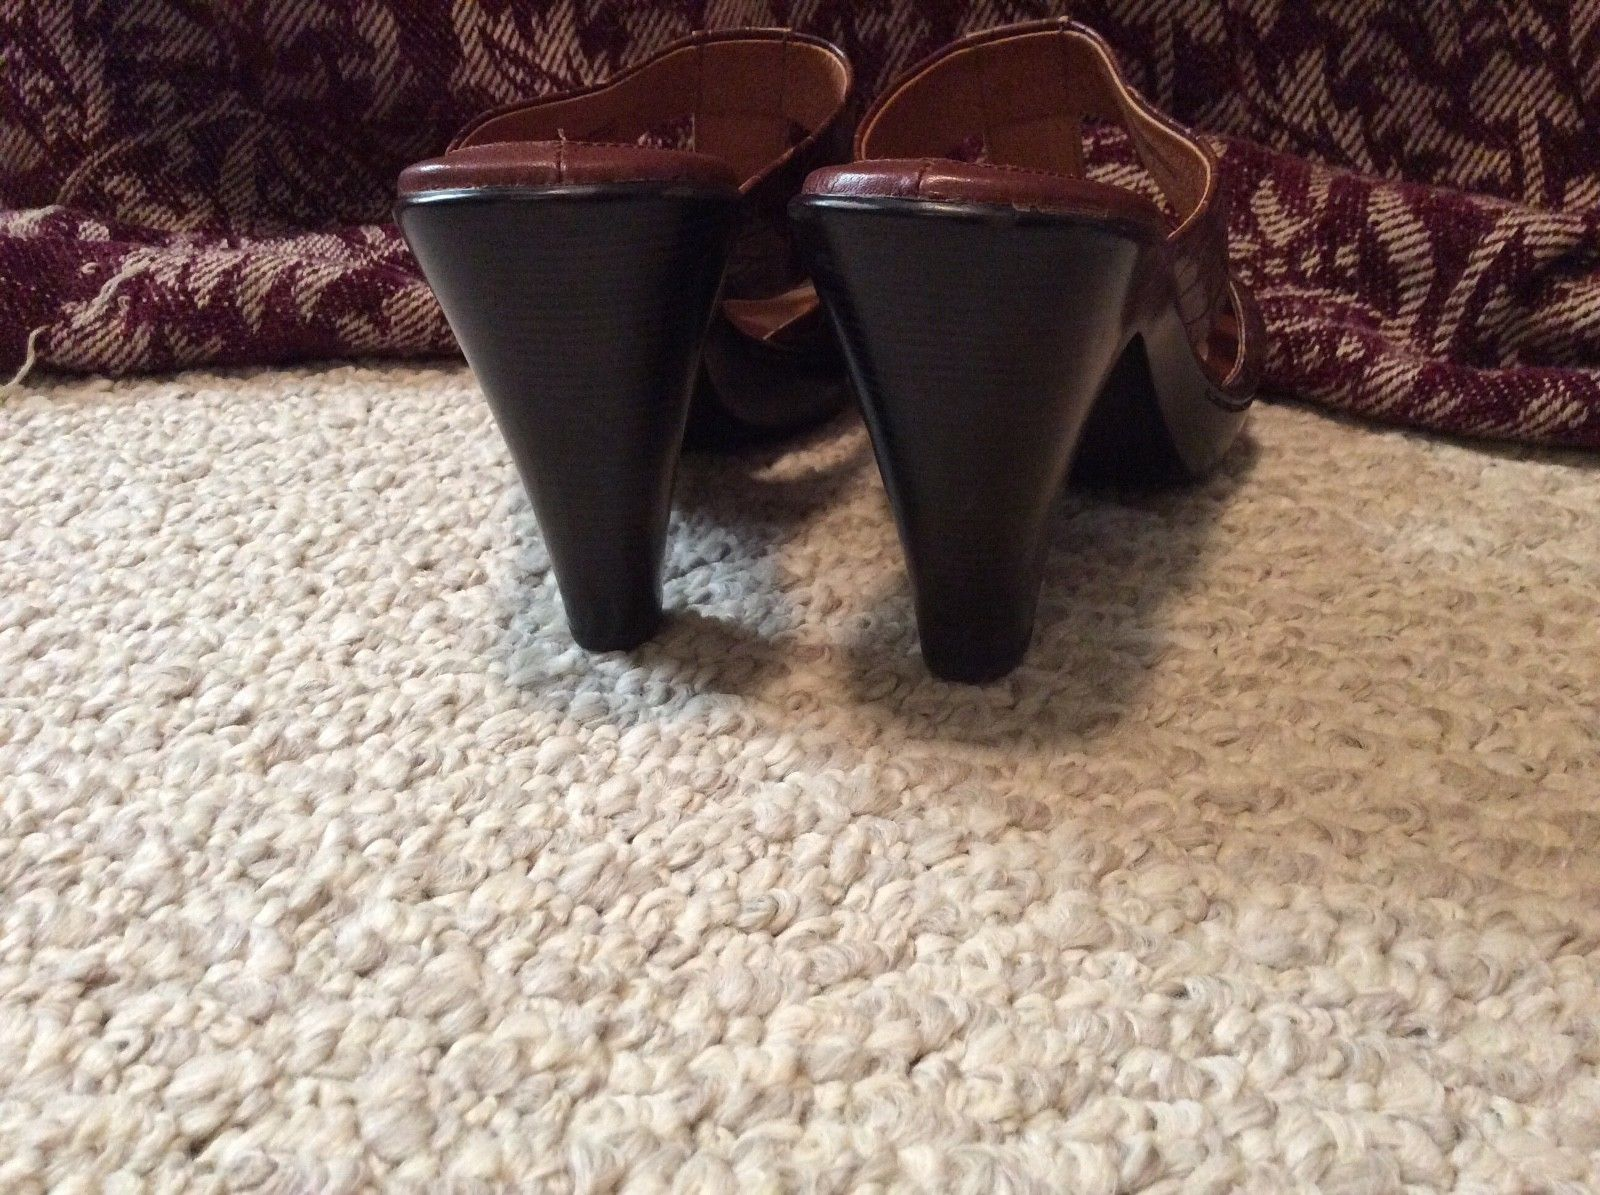 Women's 9 SOFFT BRN LEATHER Hi HEEL shoes Sandals CUTE Barely Worn